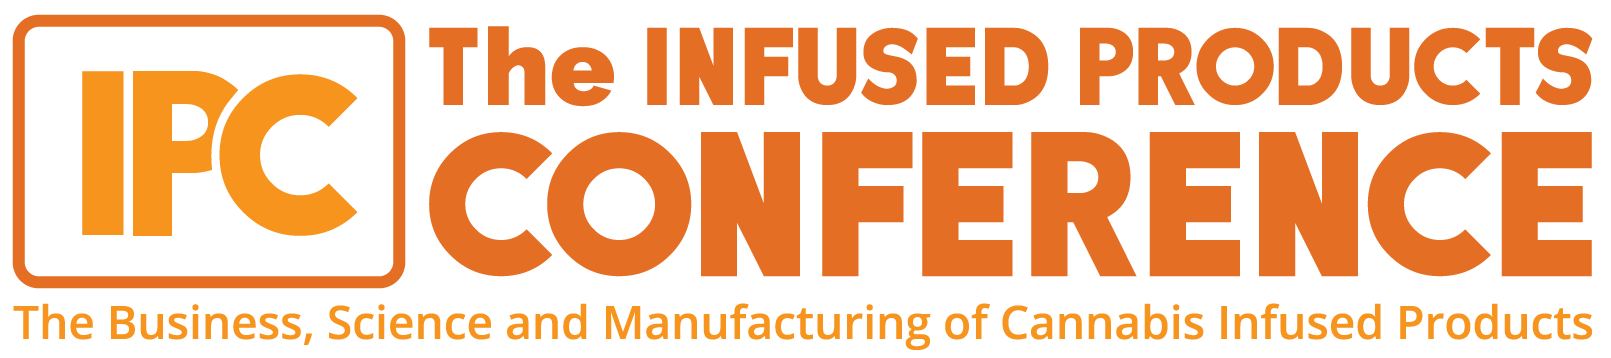 The Infused Products Conference Logo